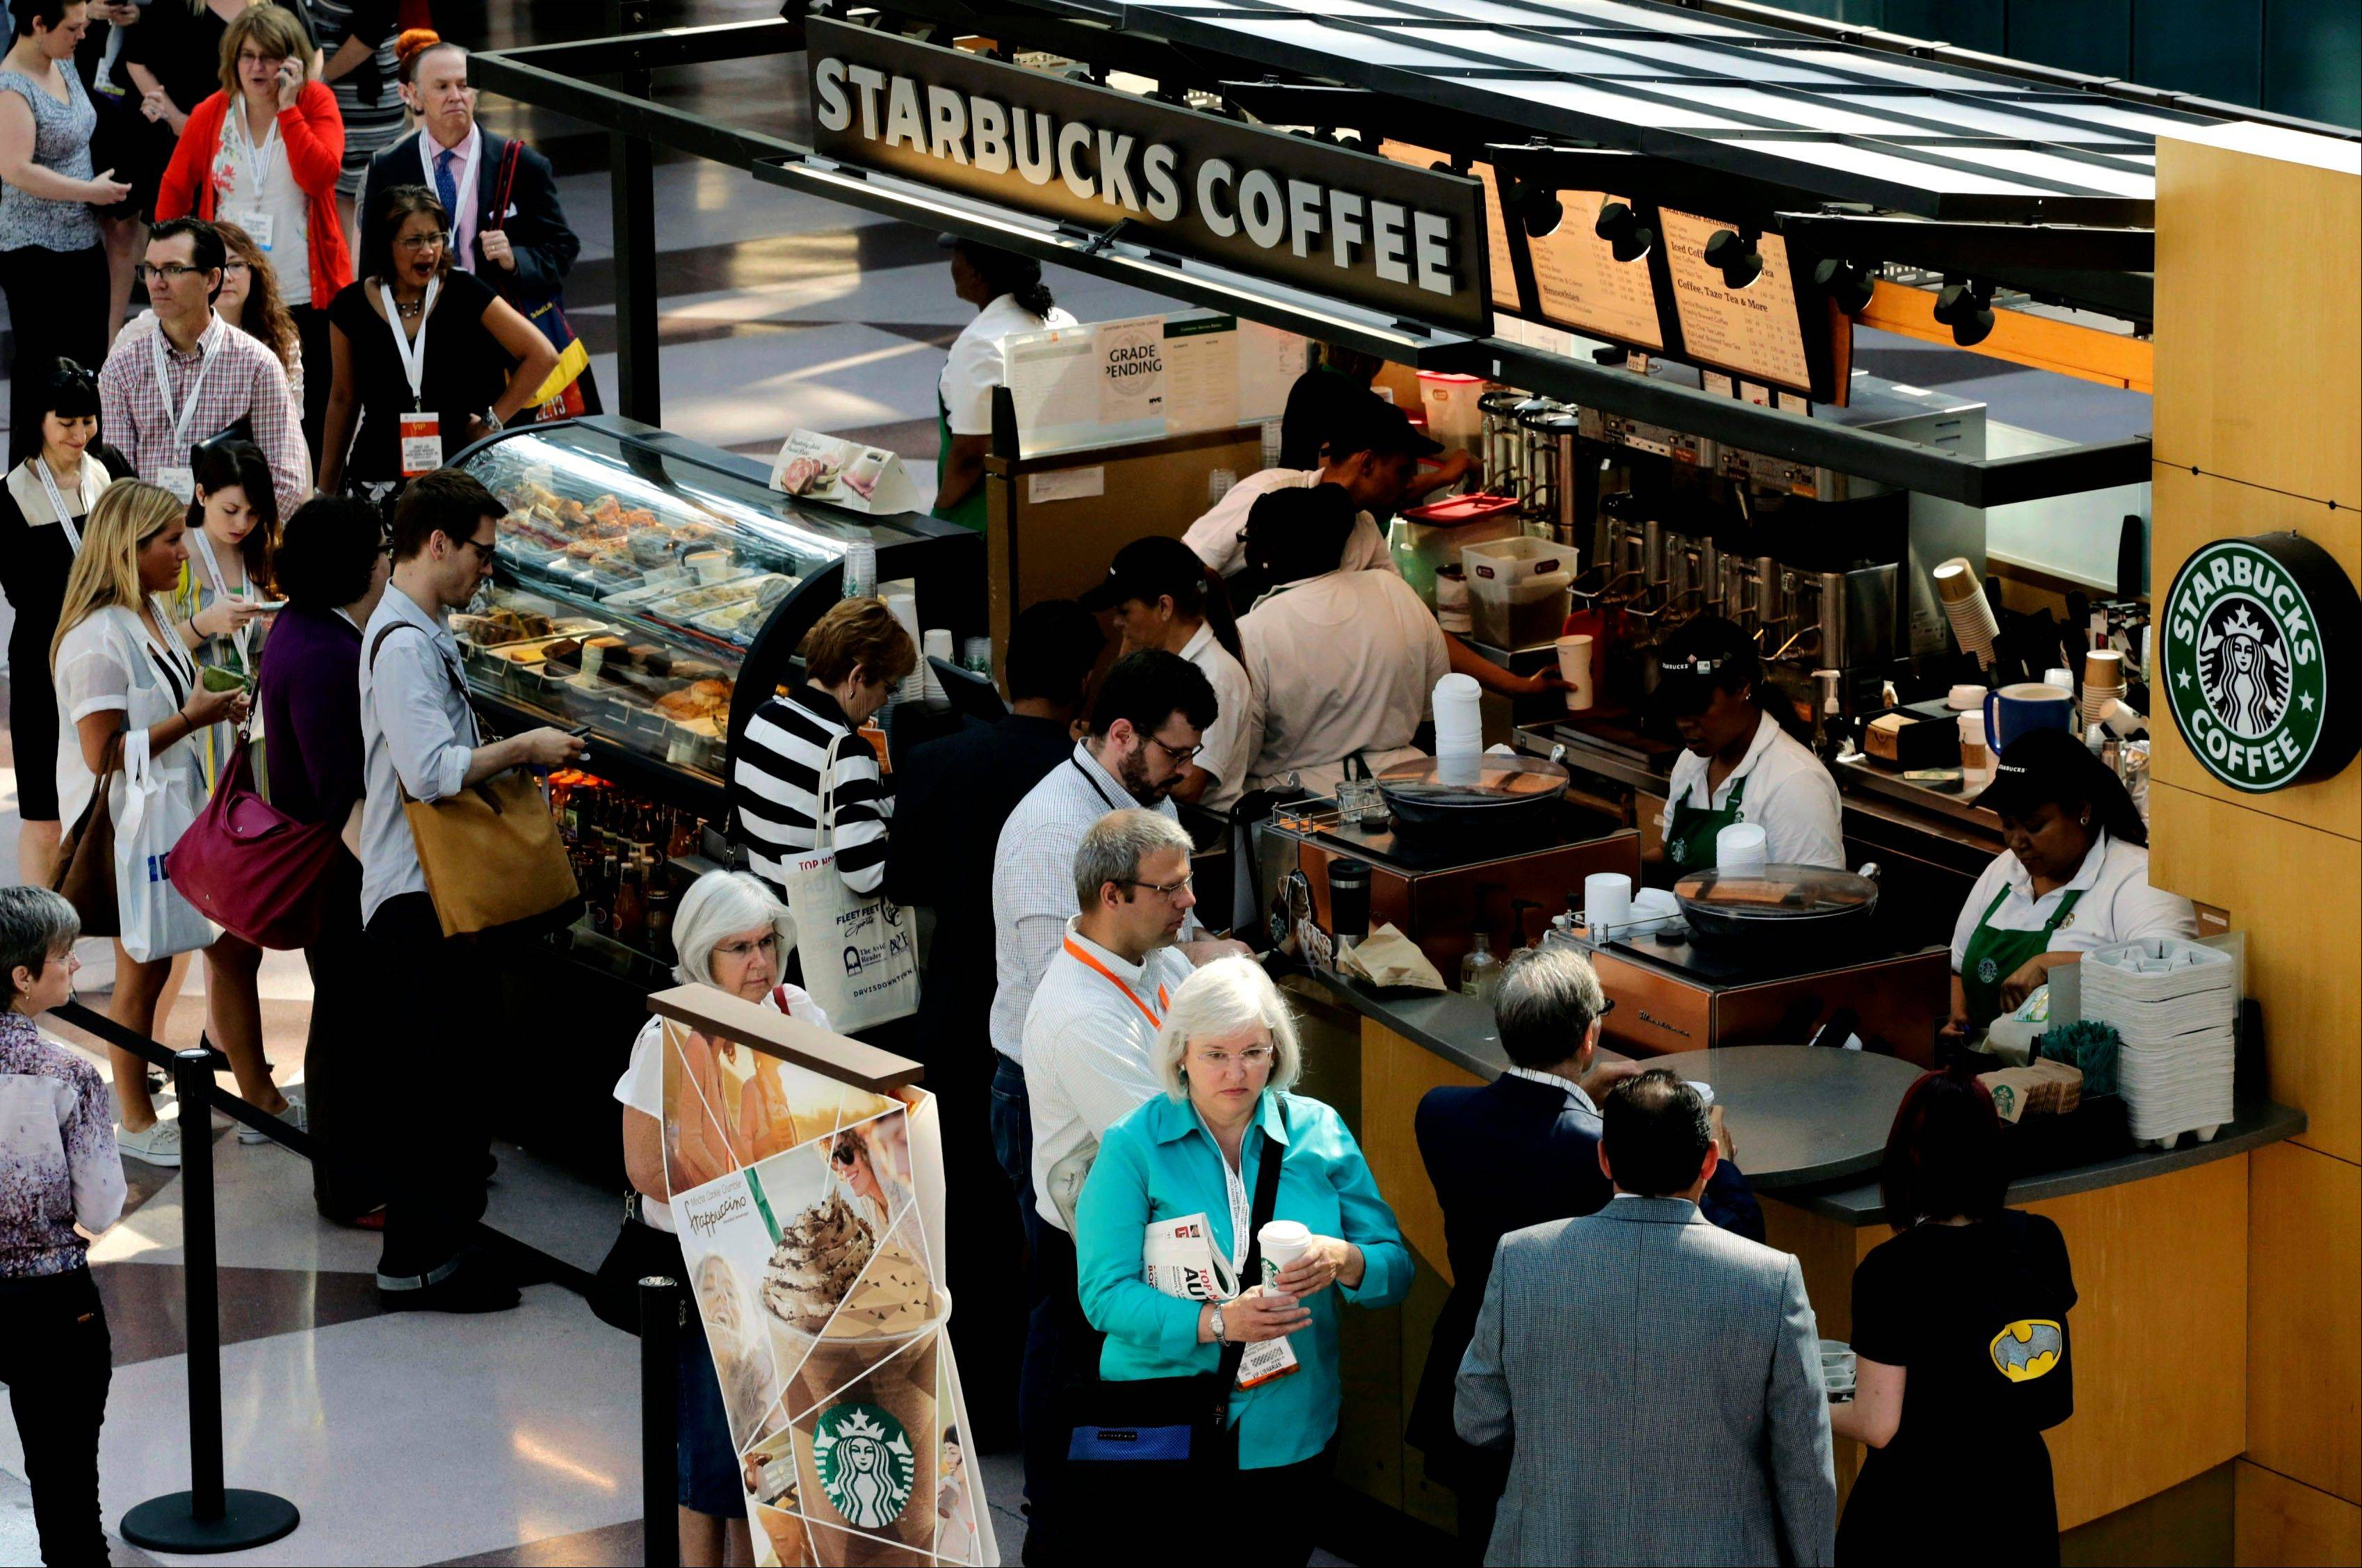 Associated Press/May 30, 2013, file photo Customers line up at a Starbucks Coffee in New York. Starbucks baristas must share their tips with shift supervisors, but assistant managers are left out in the cold, New York�s highest court ruled Wednesday.